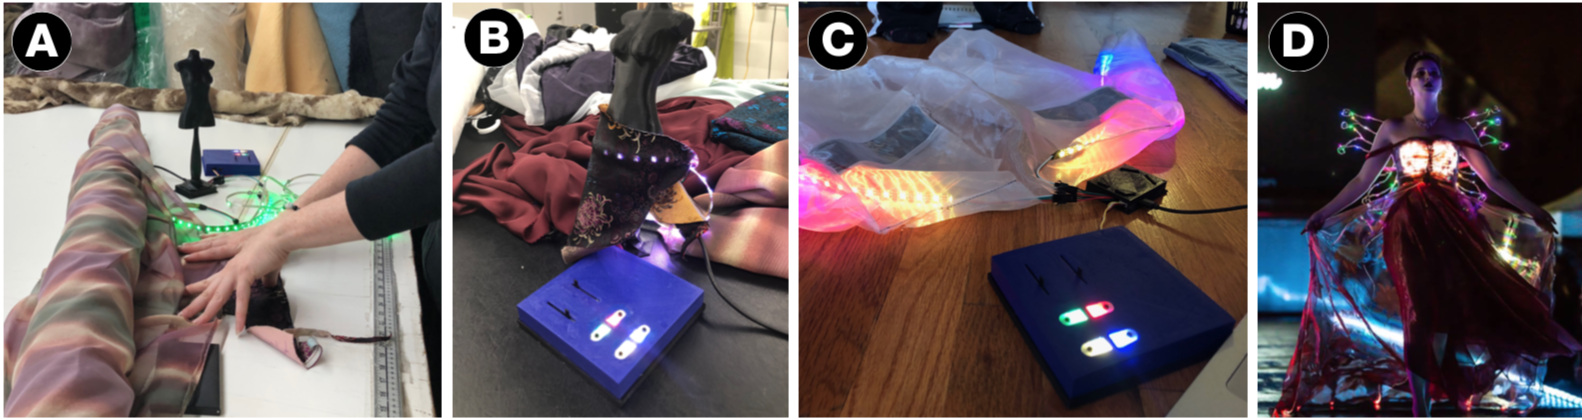 The mannequette is a prototyping platform for electronic fashion garments. It is used in different ways: (a) in-situ, iterating and deciding upon fabrics at a market; (b) for prototyping light (LED) patterns and sensors on a miniature dress form with fabrics by using the mixer; (c) for integrating a previously prototyped and now completed pattern and sensor interactions into an assembled garment; (d) in a completed garment created in a runway show.